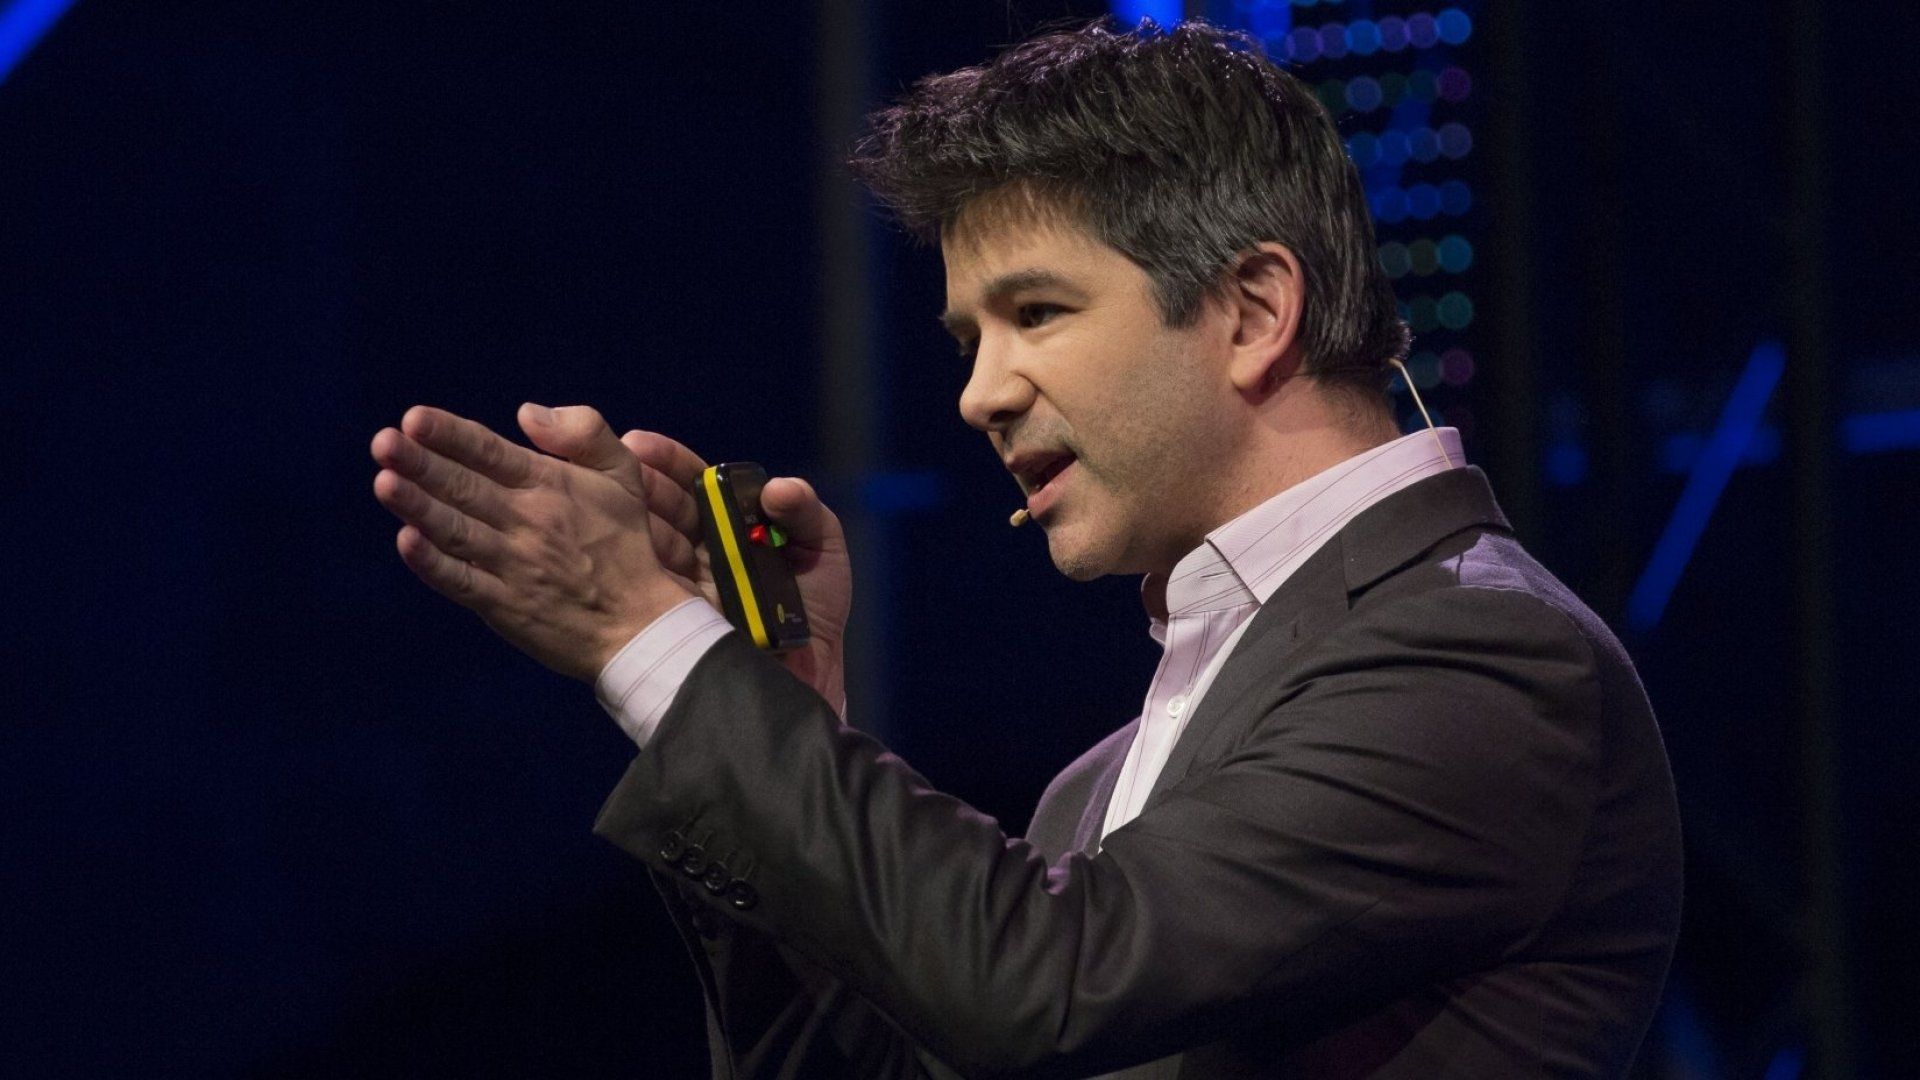 Ousted Uber Founder Travis Kalanick Calls Lawsuit Against Him a 'Public and Personal Attack'